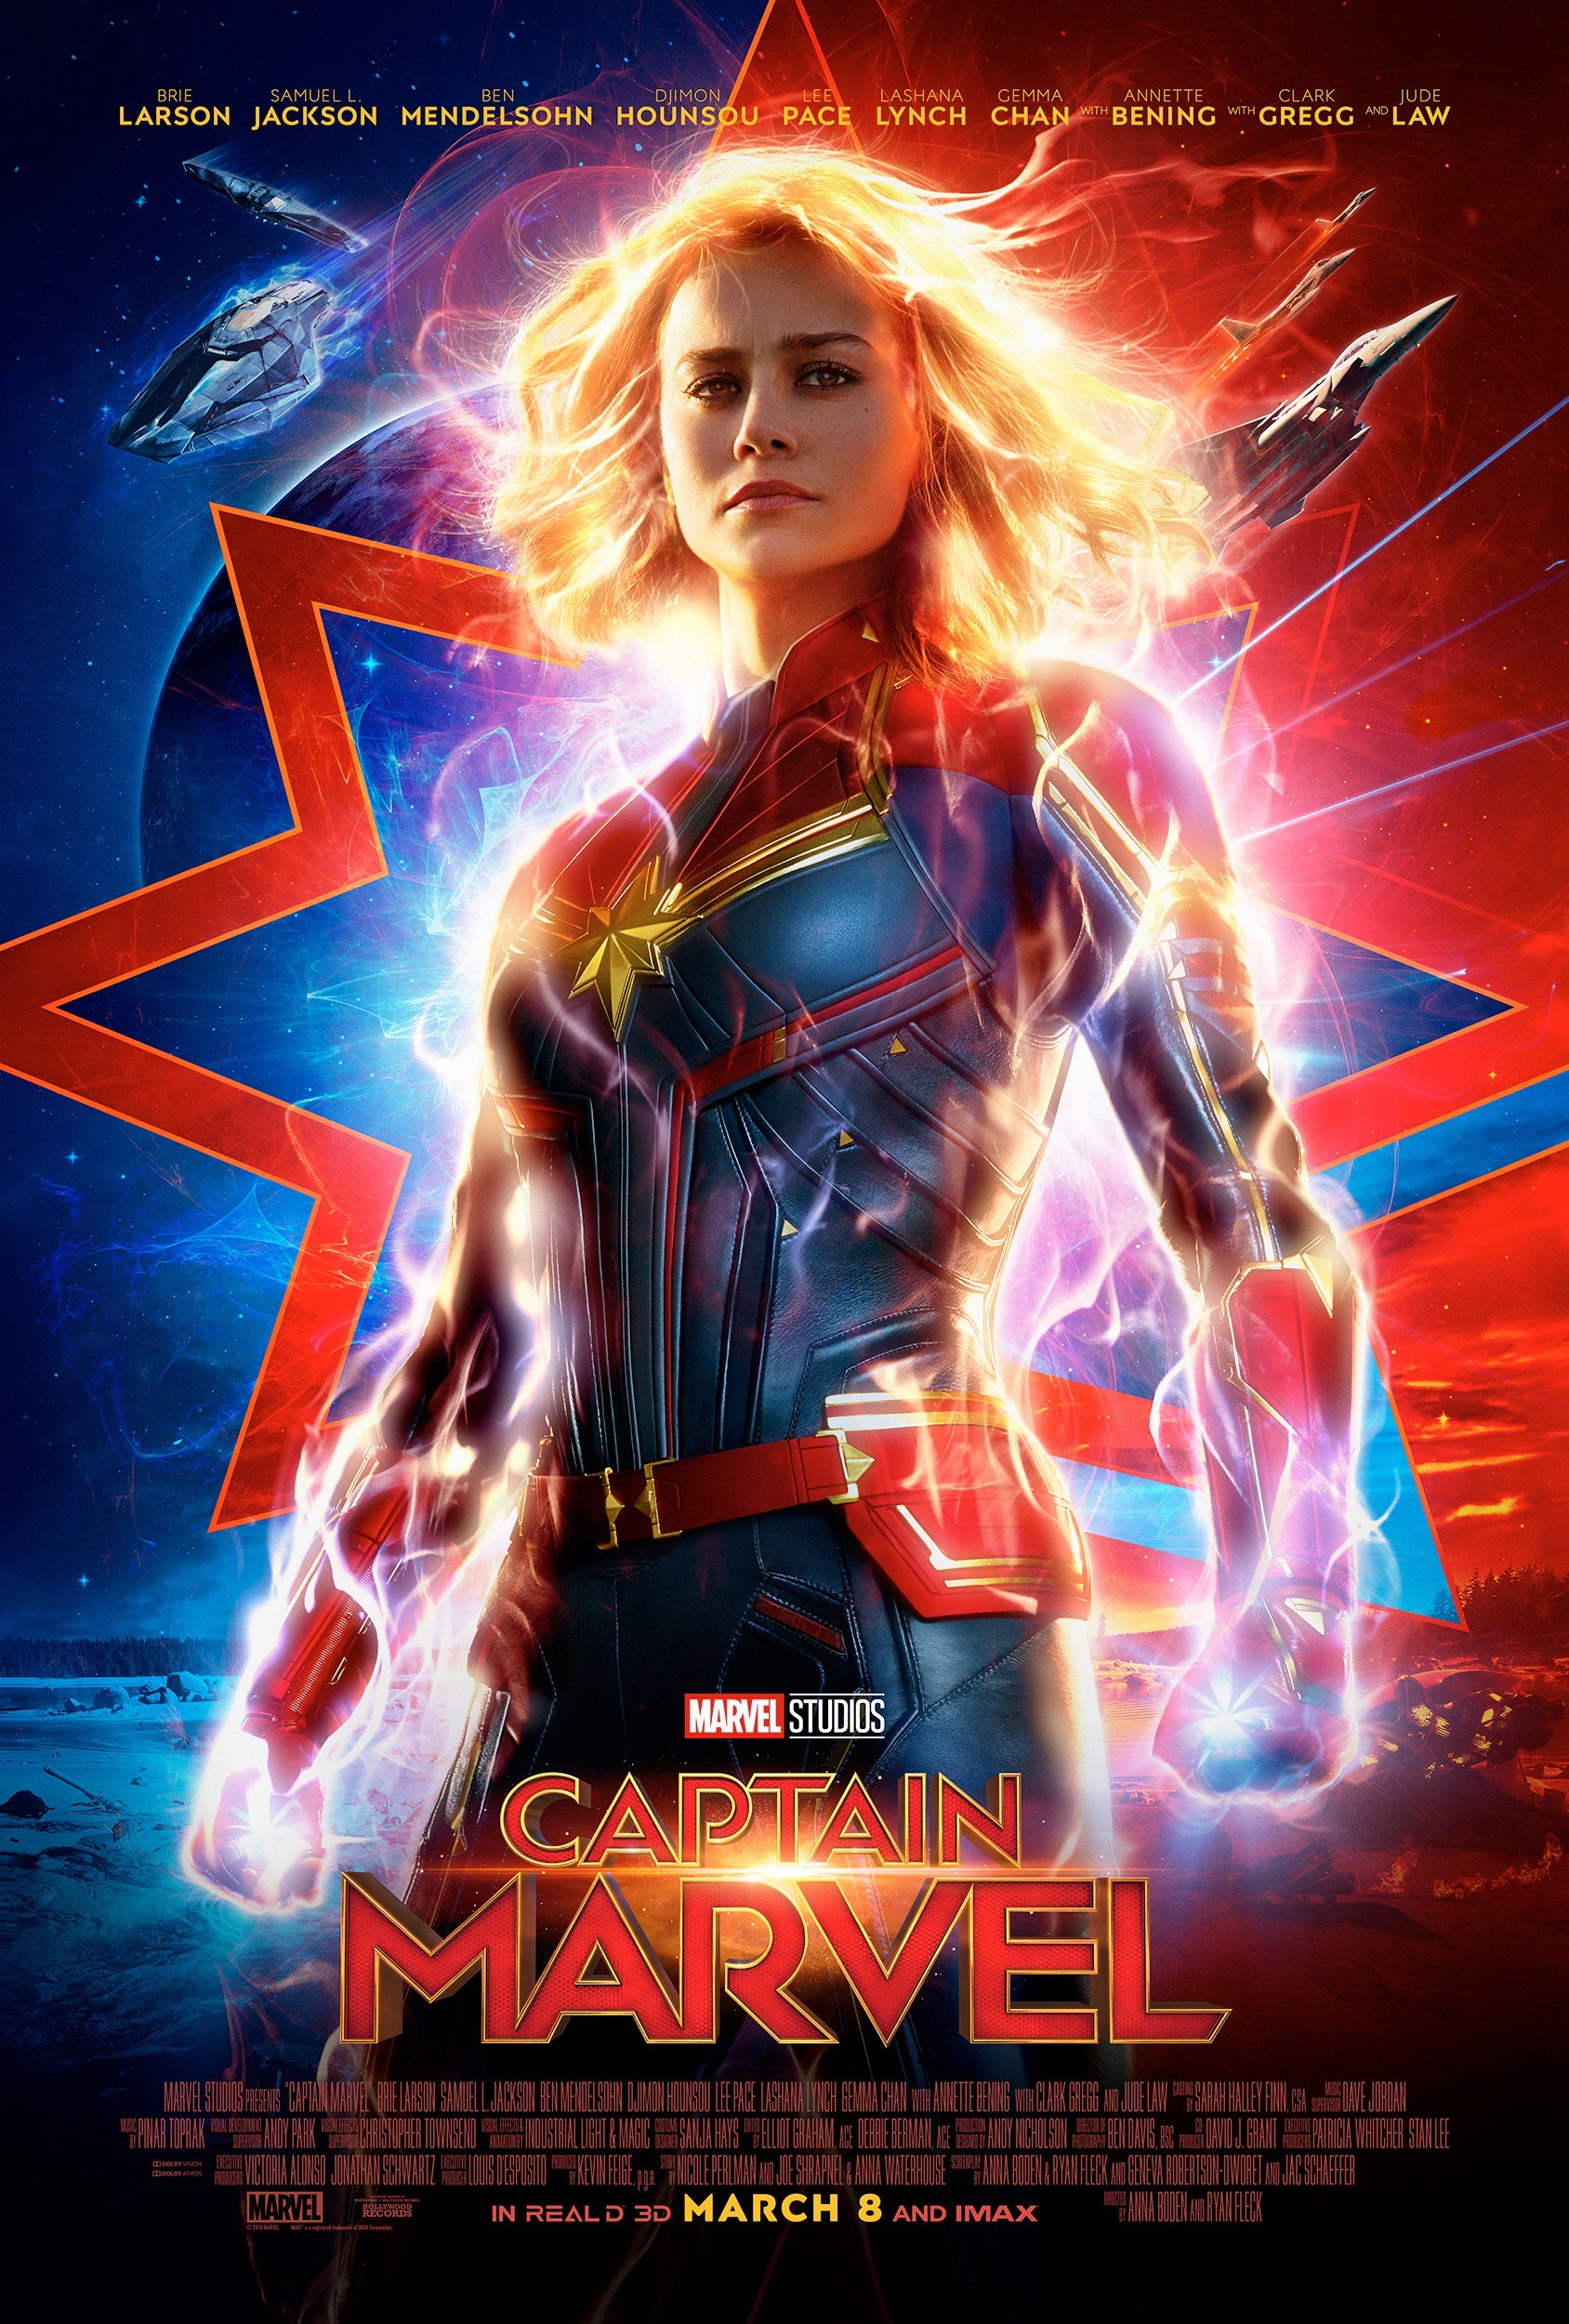 captain marvel poster_picture lock.jpg